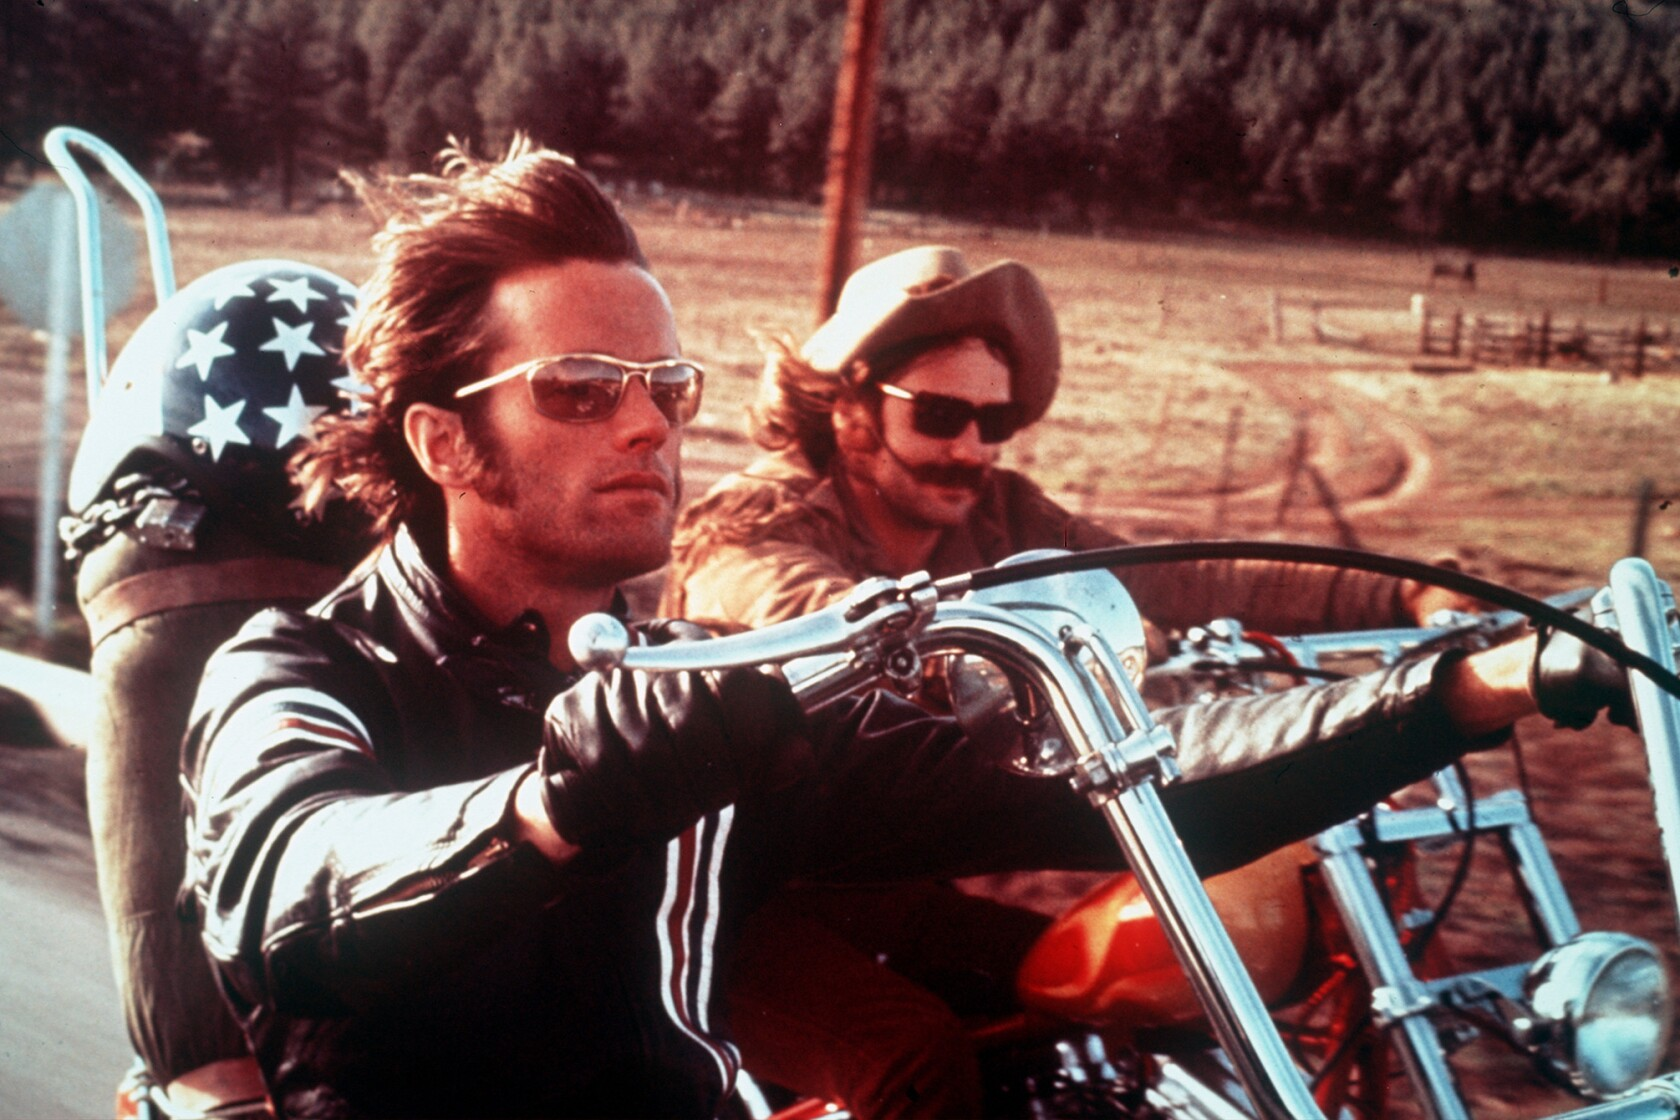 39 easy rider 39 star peter fonda a counterculture icon dead at 79 los angeles times. Black Bedroom Furniture Sets. Home Design Ideas